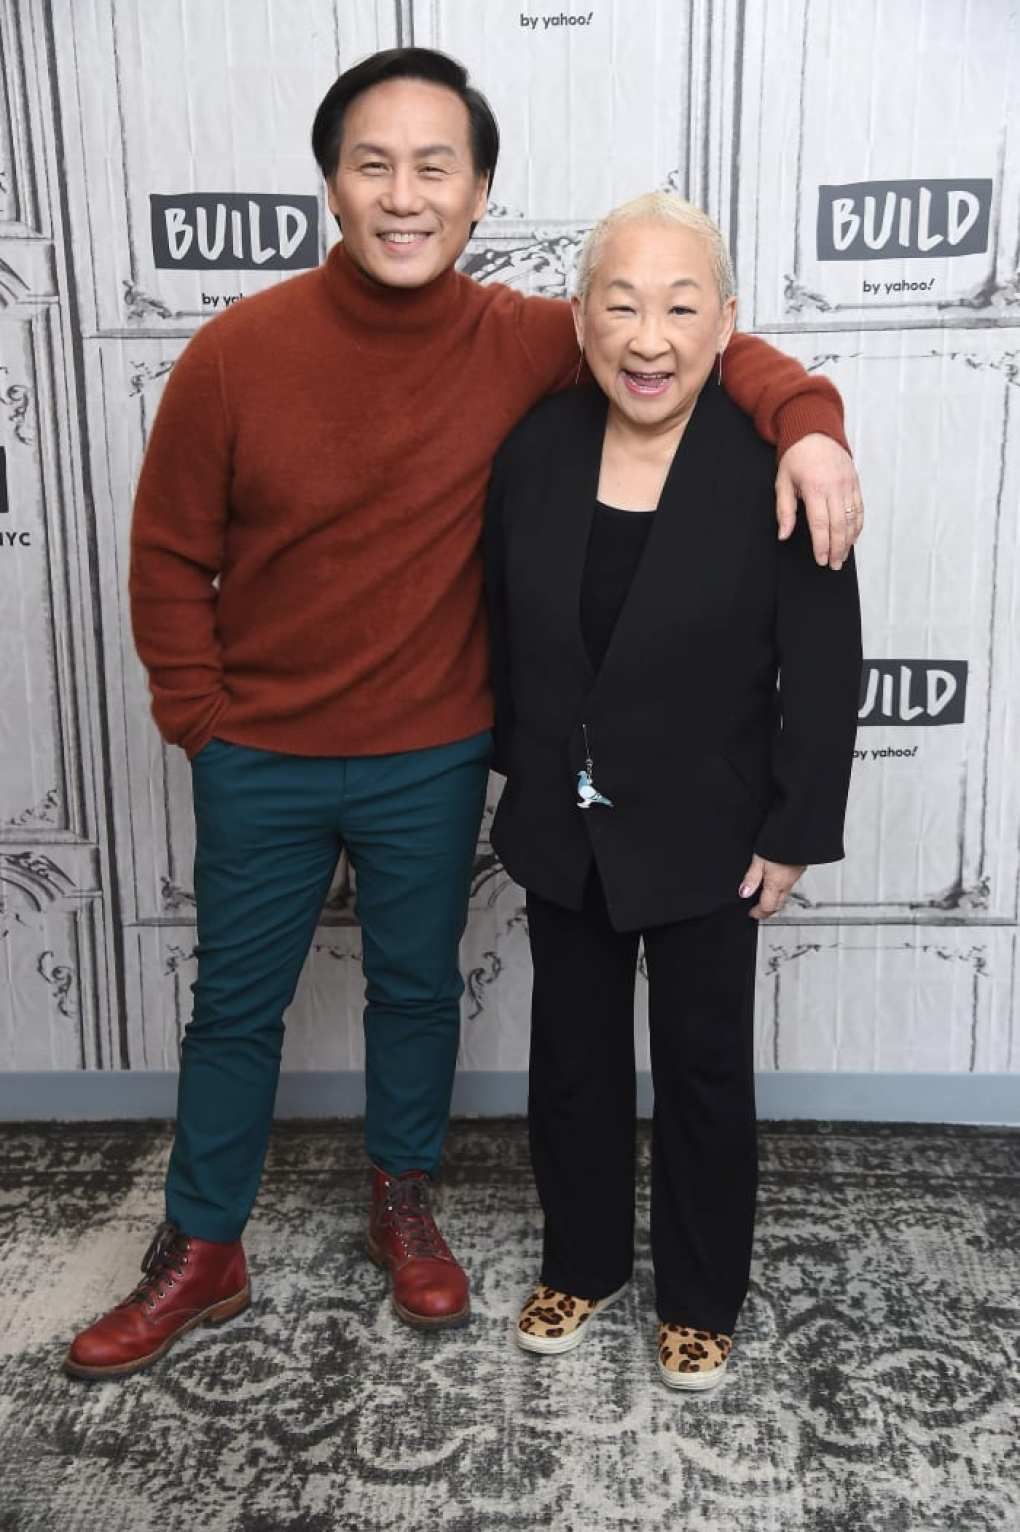 Co-stars Wong and Lori Tan Chinn, who also has some serious shoe game.